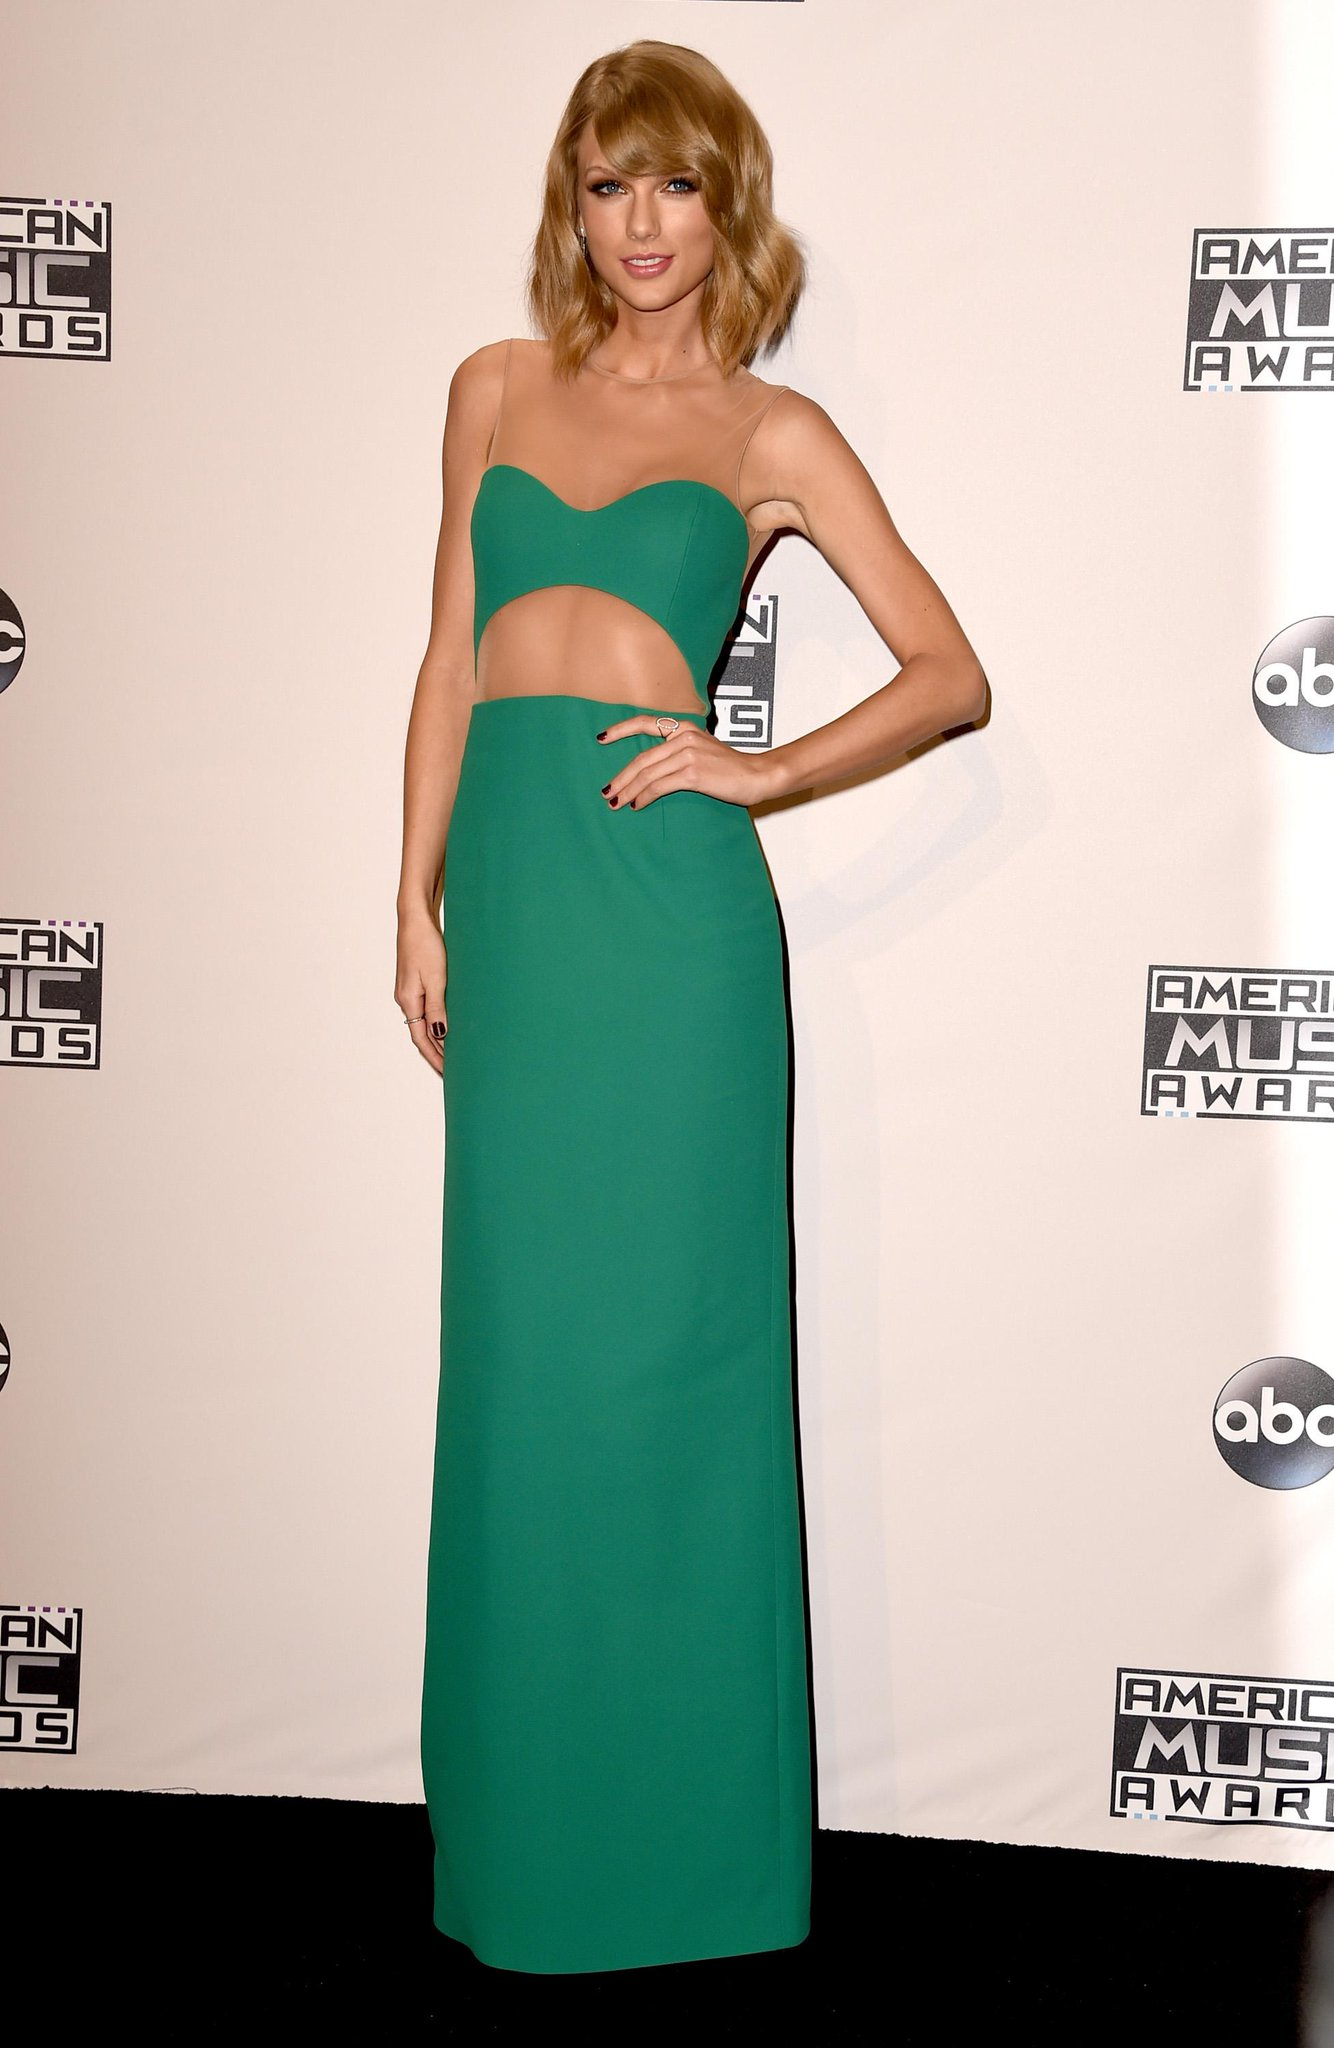 Taylor Swift, Karlie Kloss, Kendall Jenner - all the pictures from the #AMAs2014 last night http://t.co/geSd50o1ji http://t.co/05tAit6ArQ